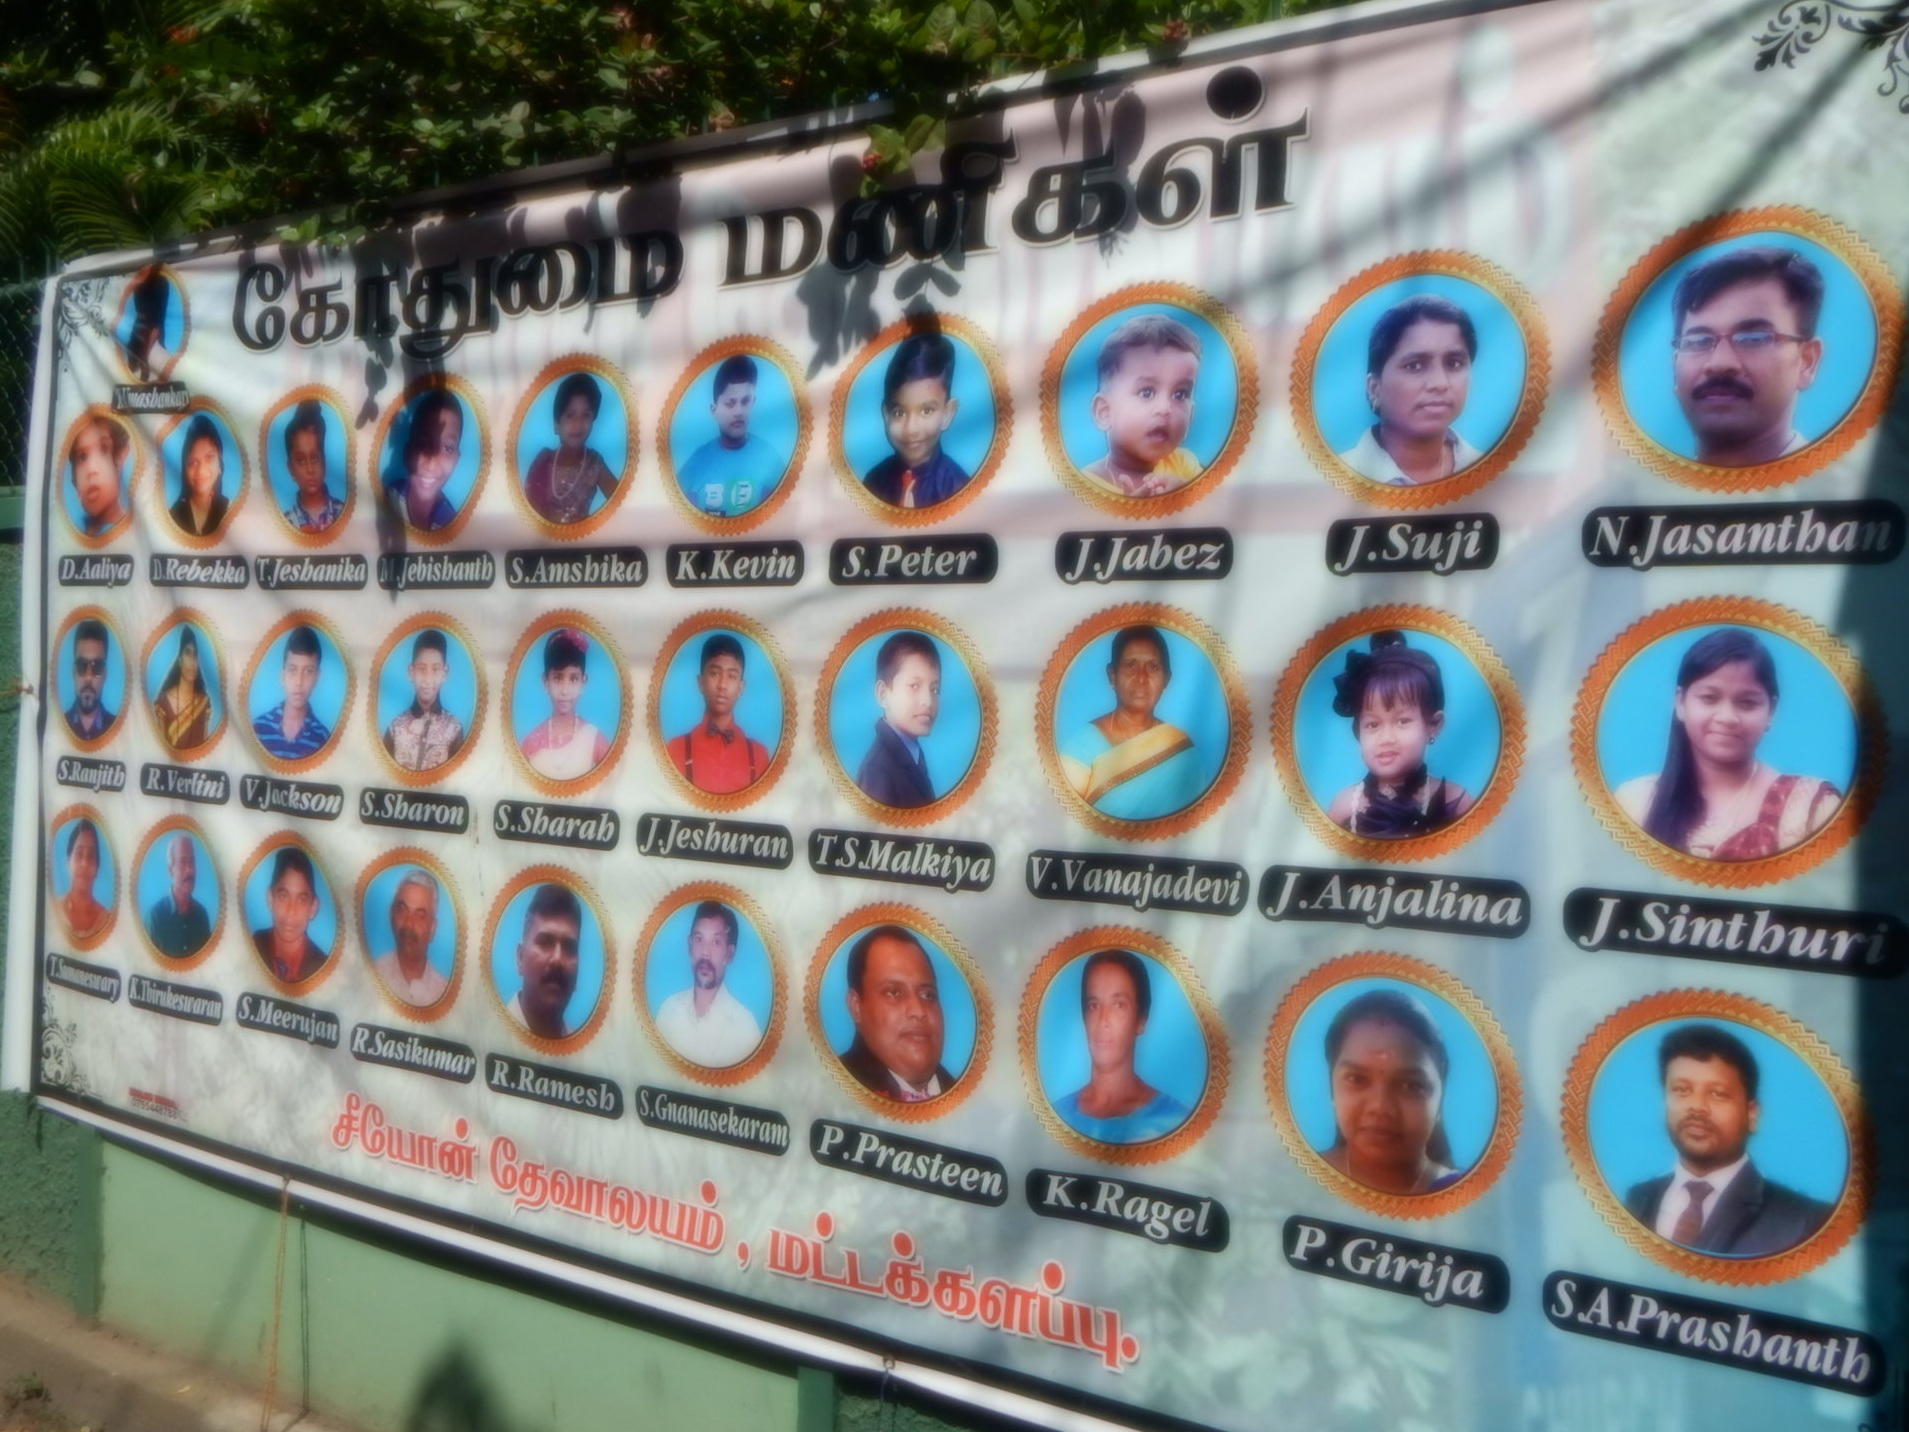 A banner with names and faces of the victims of Easter Morning bomb blast hangs in the church yard.